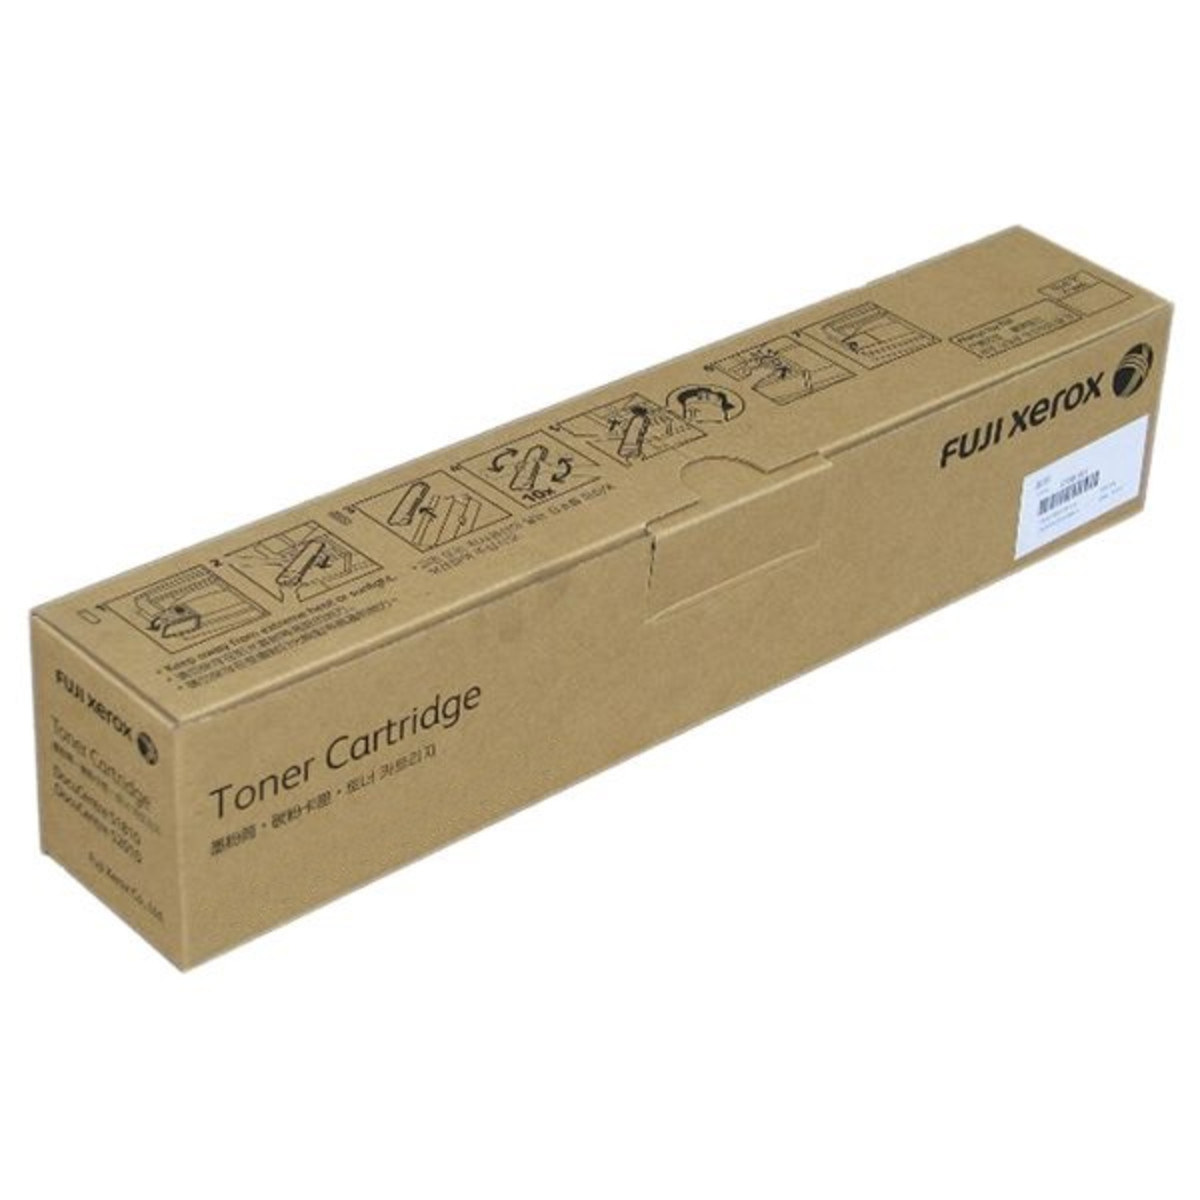 Fuji Xerox 16194400 Cyan Toner Cartridges - High Yield